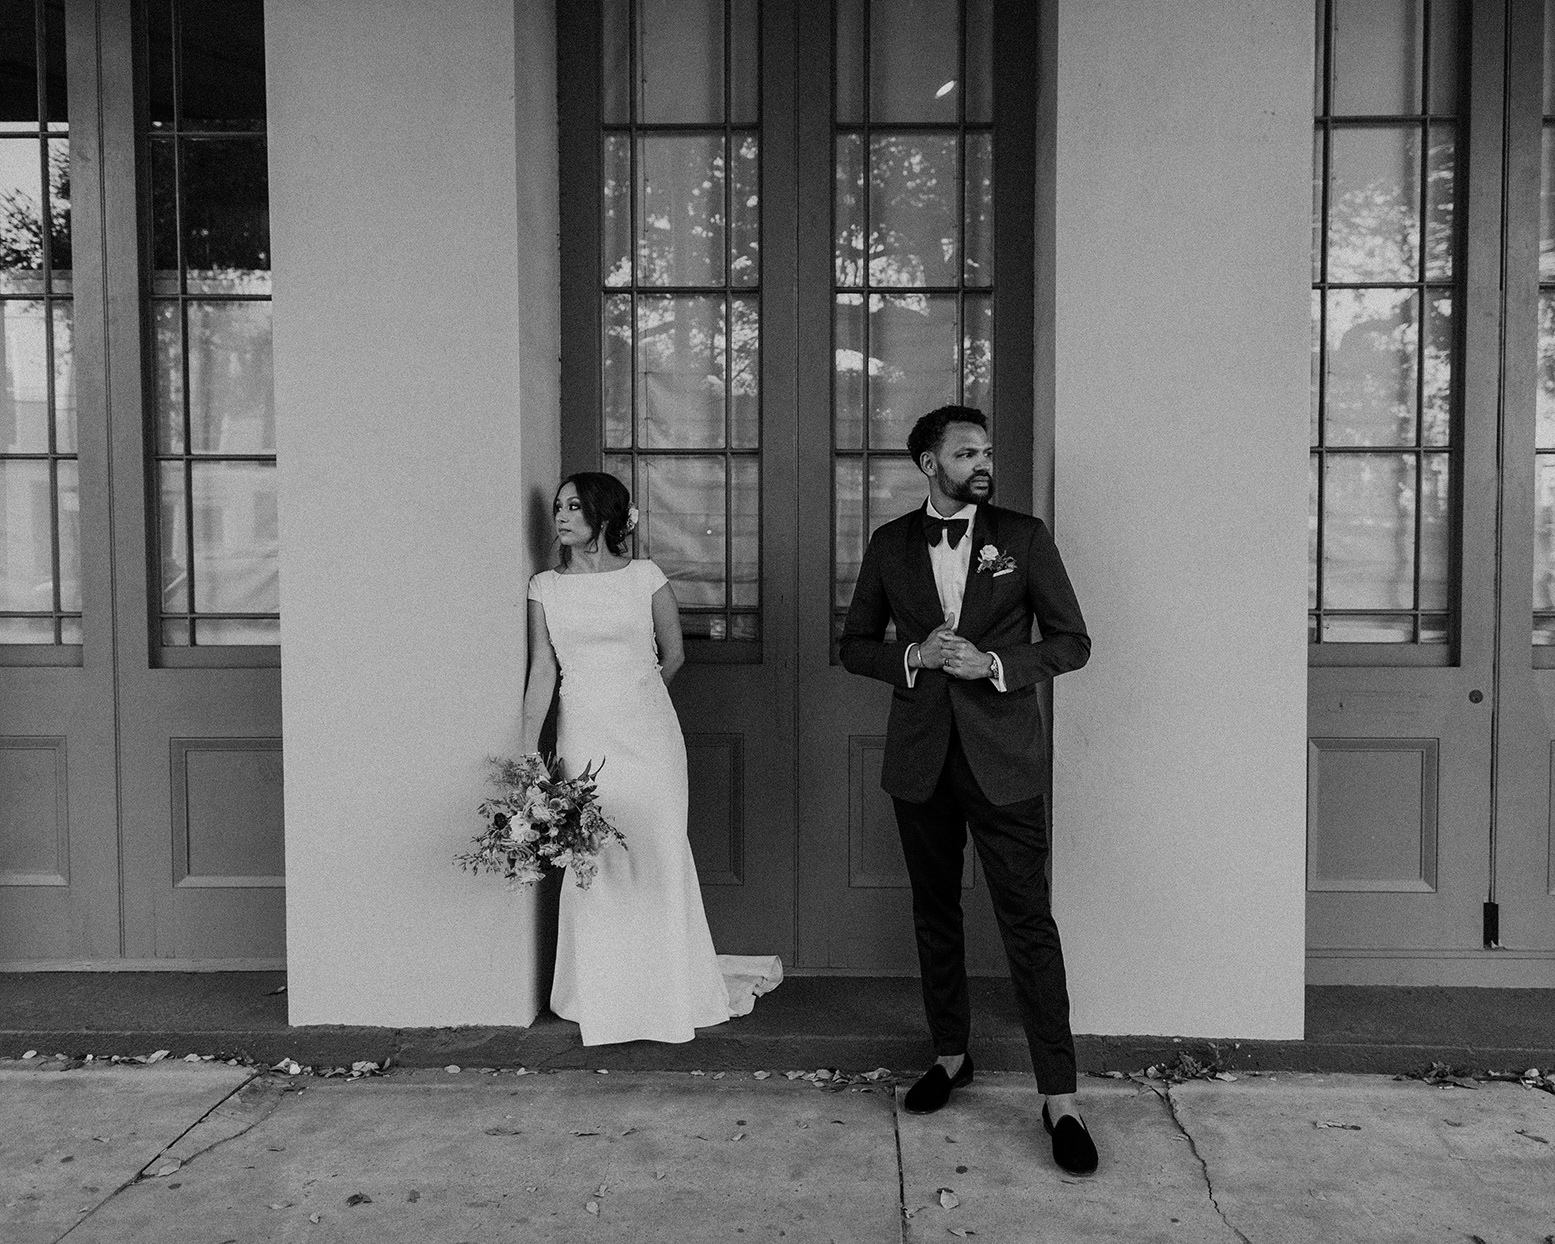 wedding couple black and white portrait in front of doors